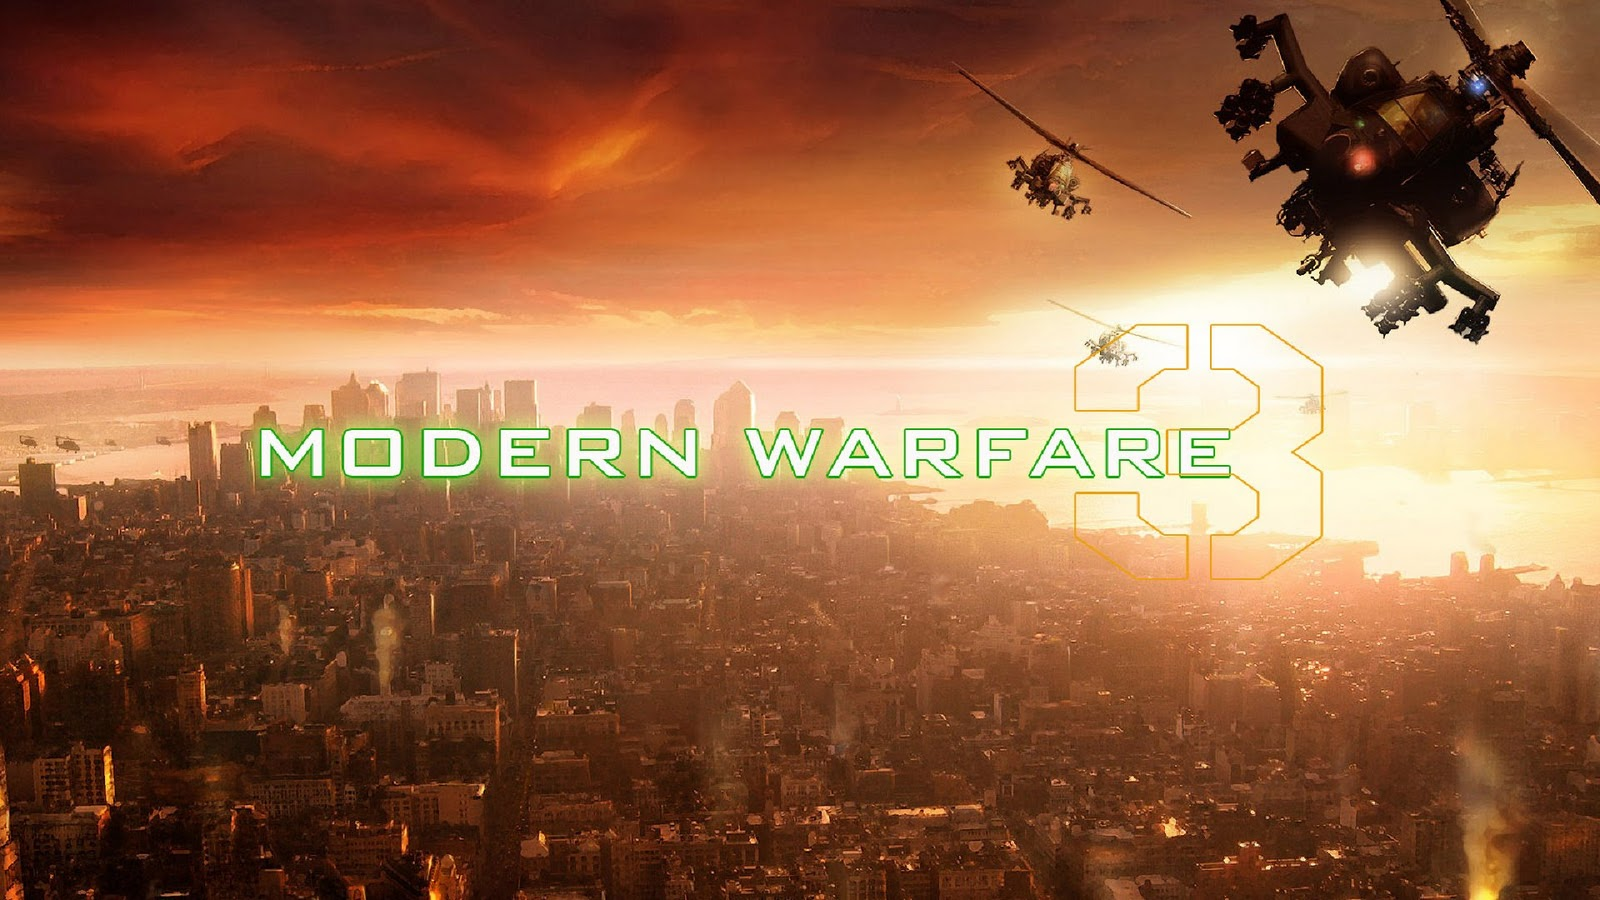 http://4.bp.blogspot.com/-kKi7_-Wg1bo/TtrZp81pJEI/AAAAAAAAJK4/NjaZyvoWtko/s1600/Call-of-Duty-modern-warfare-3-wallpaper-by-destroyer1395_1920x1080.jpg